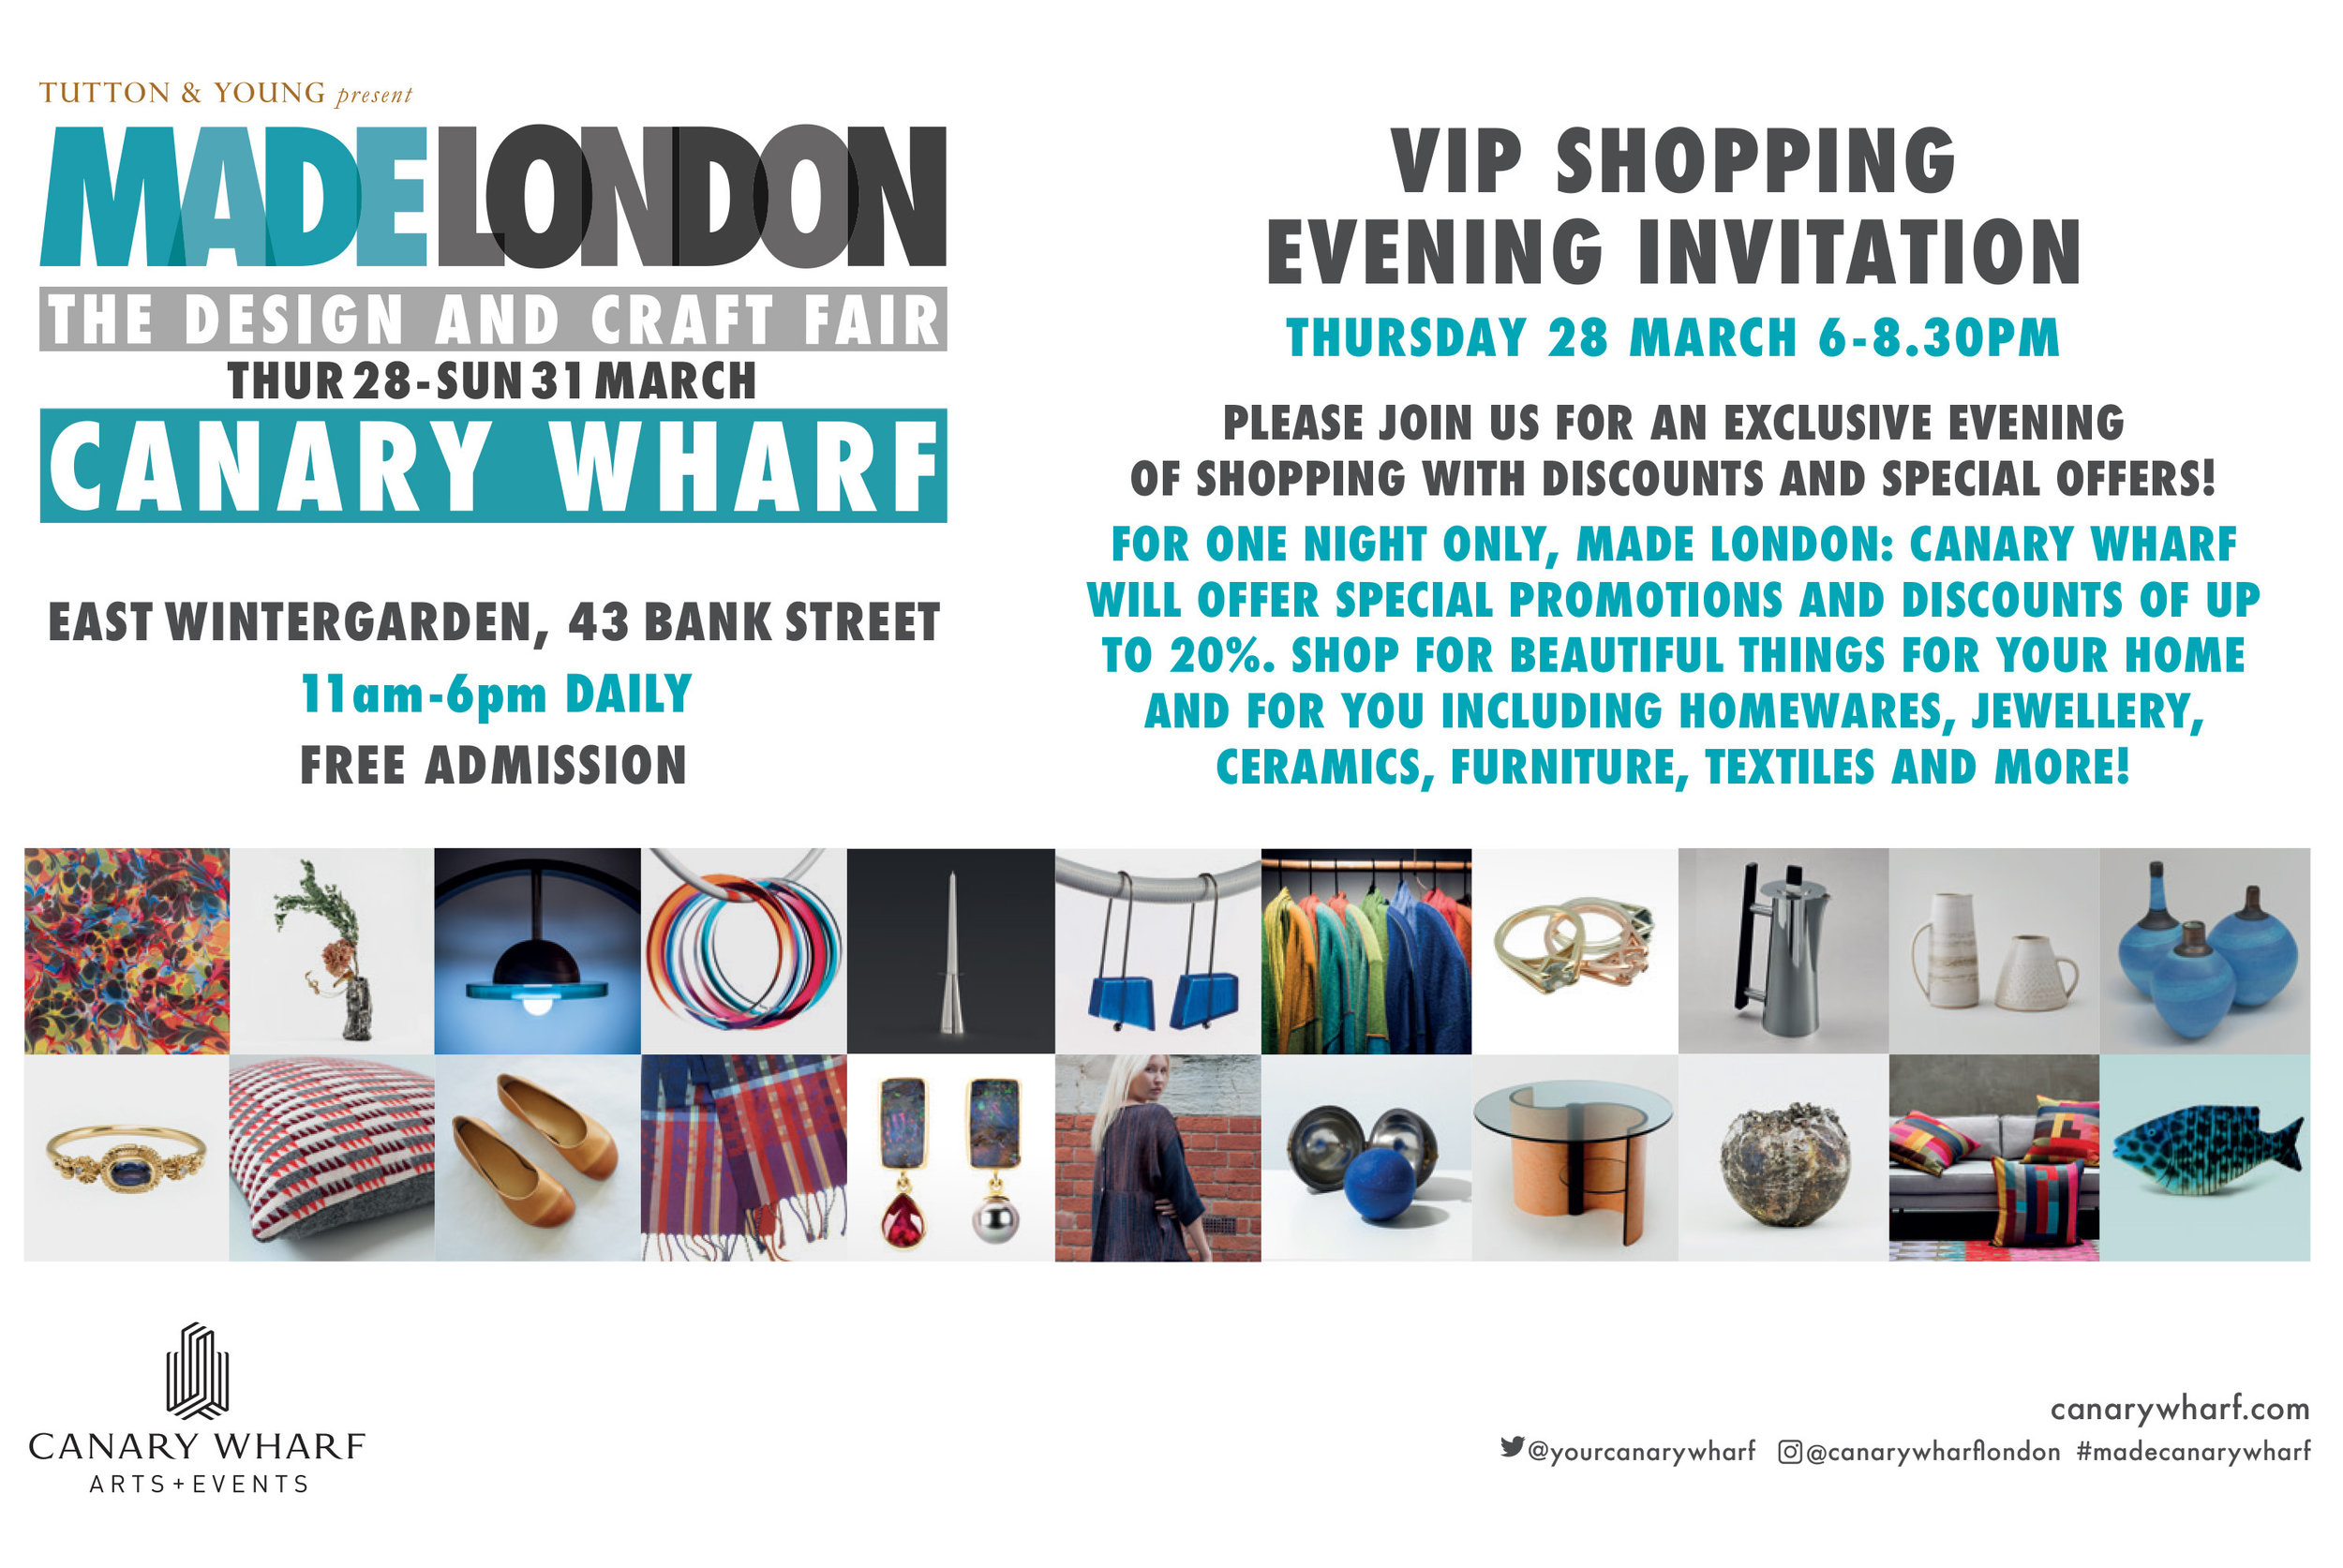 MADE LONDON Canary Wharf shopping event.jpg